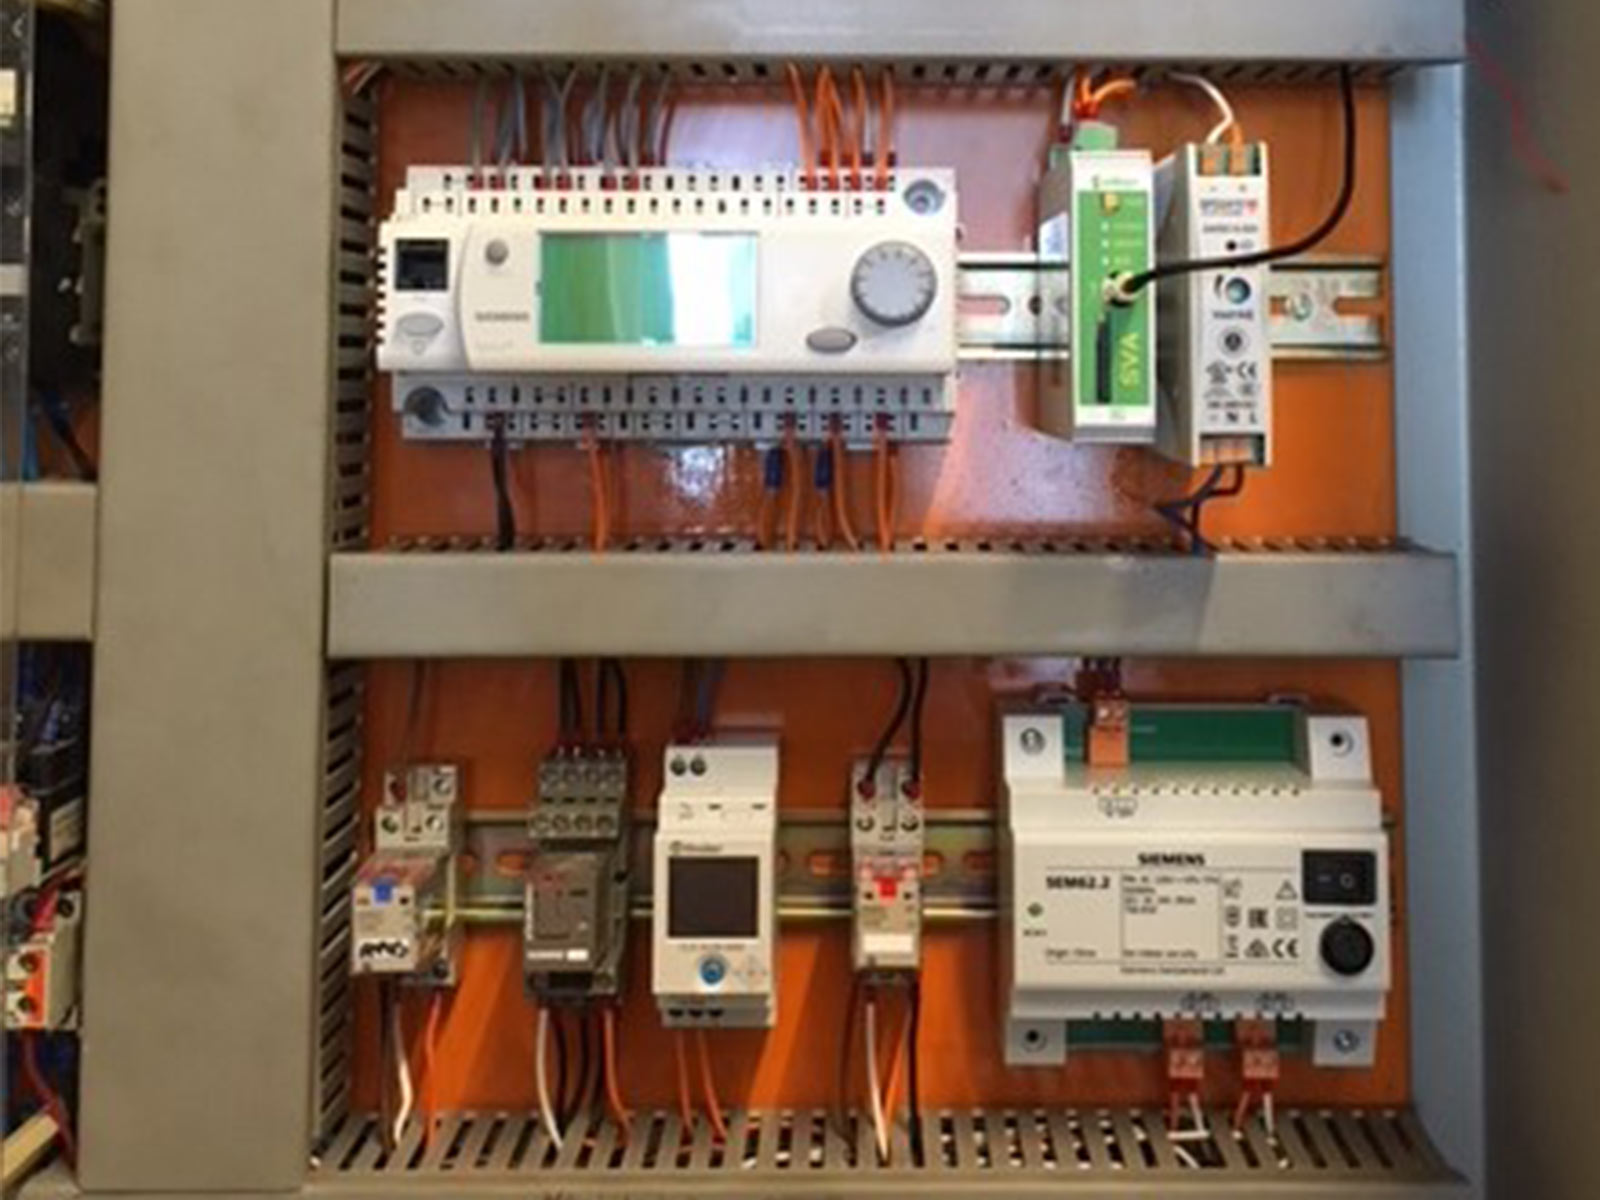 SVA-3G for monitoring boiler room alarms